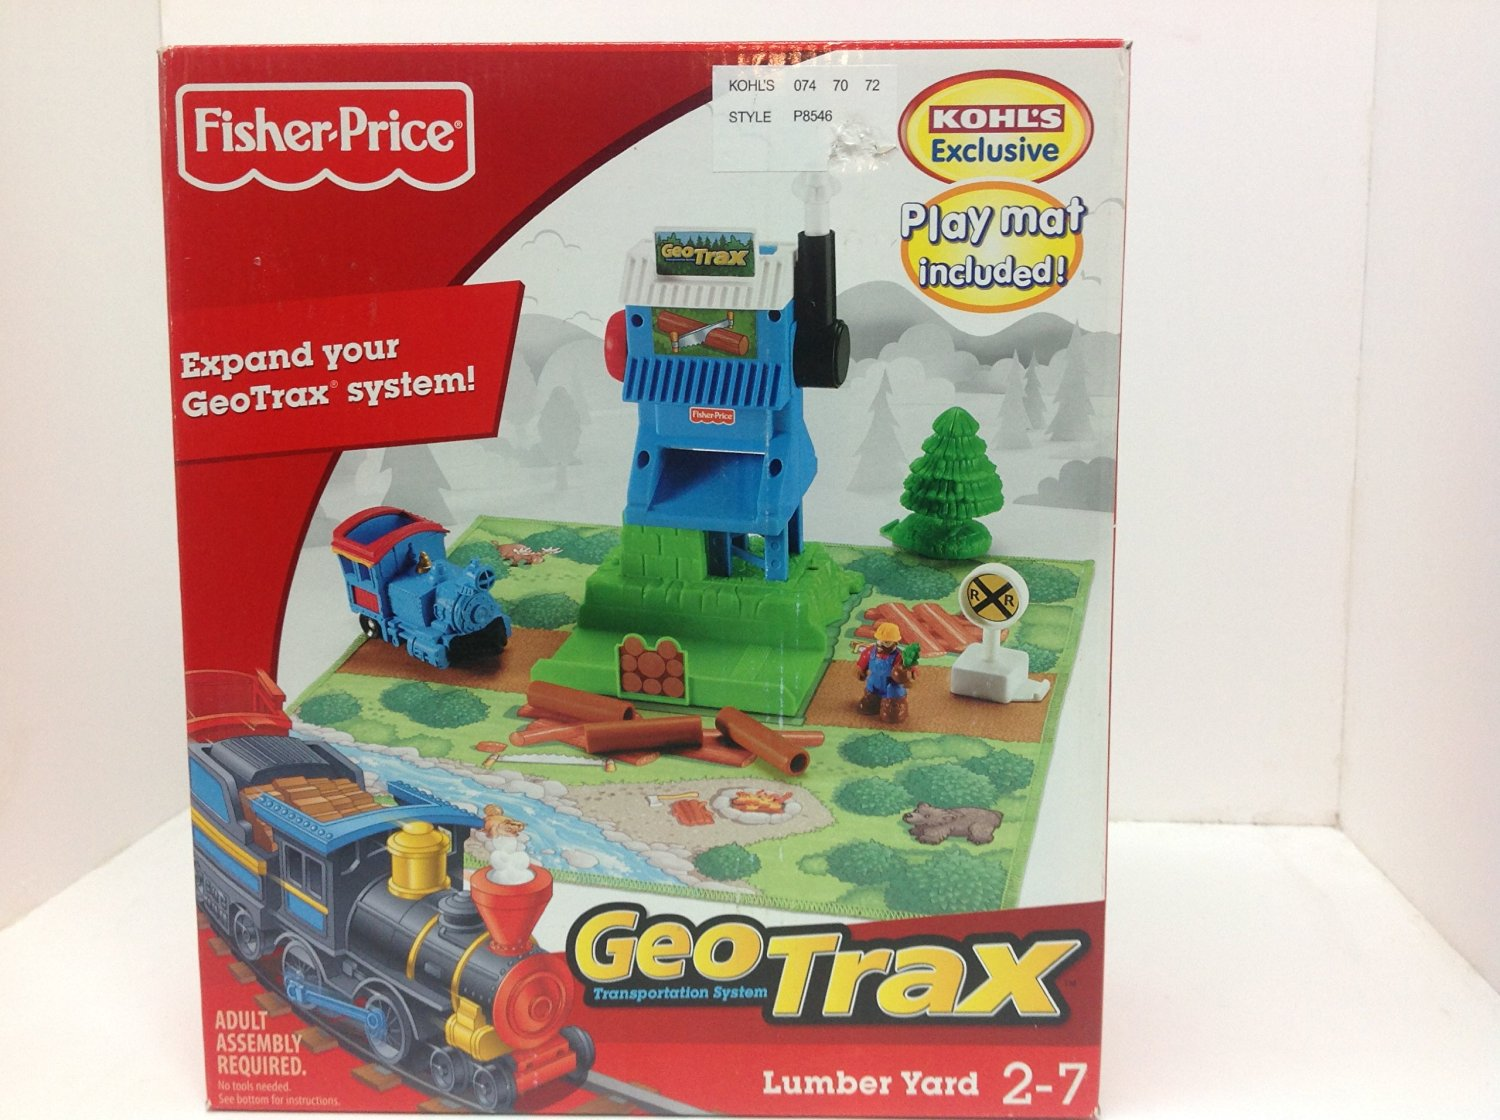 GeoTrax Fisher Price Lumber Yard Kohls Exclusive #P8546 Year 2009